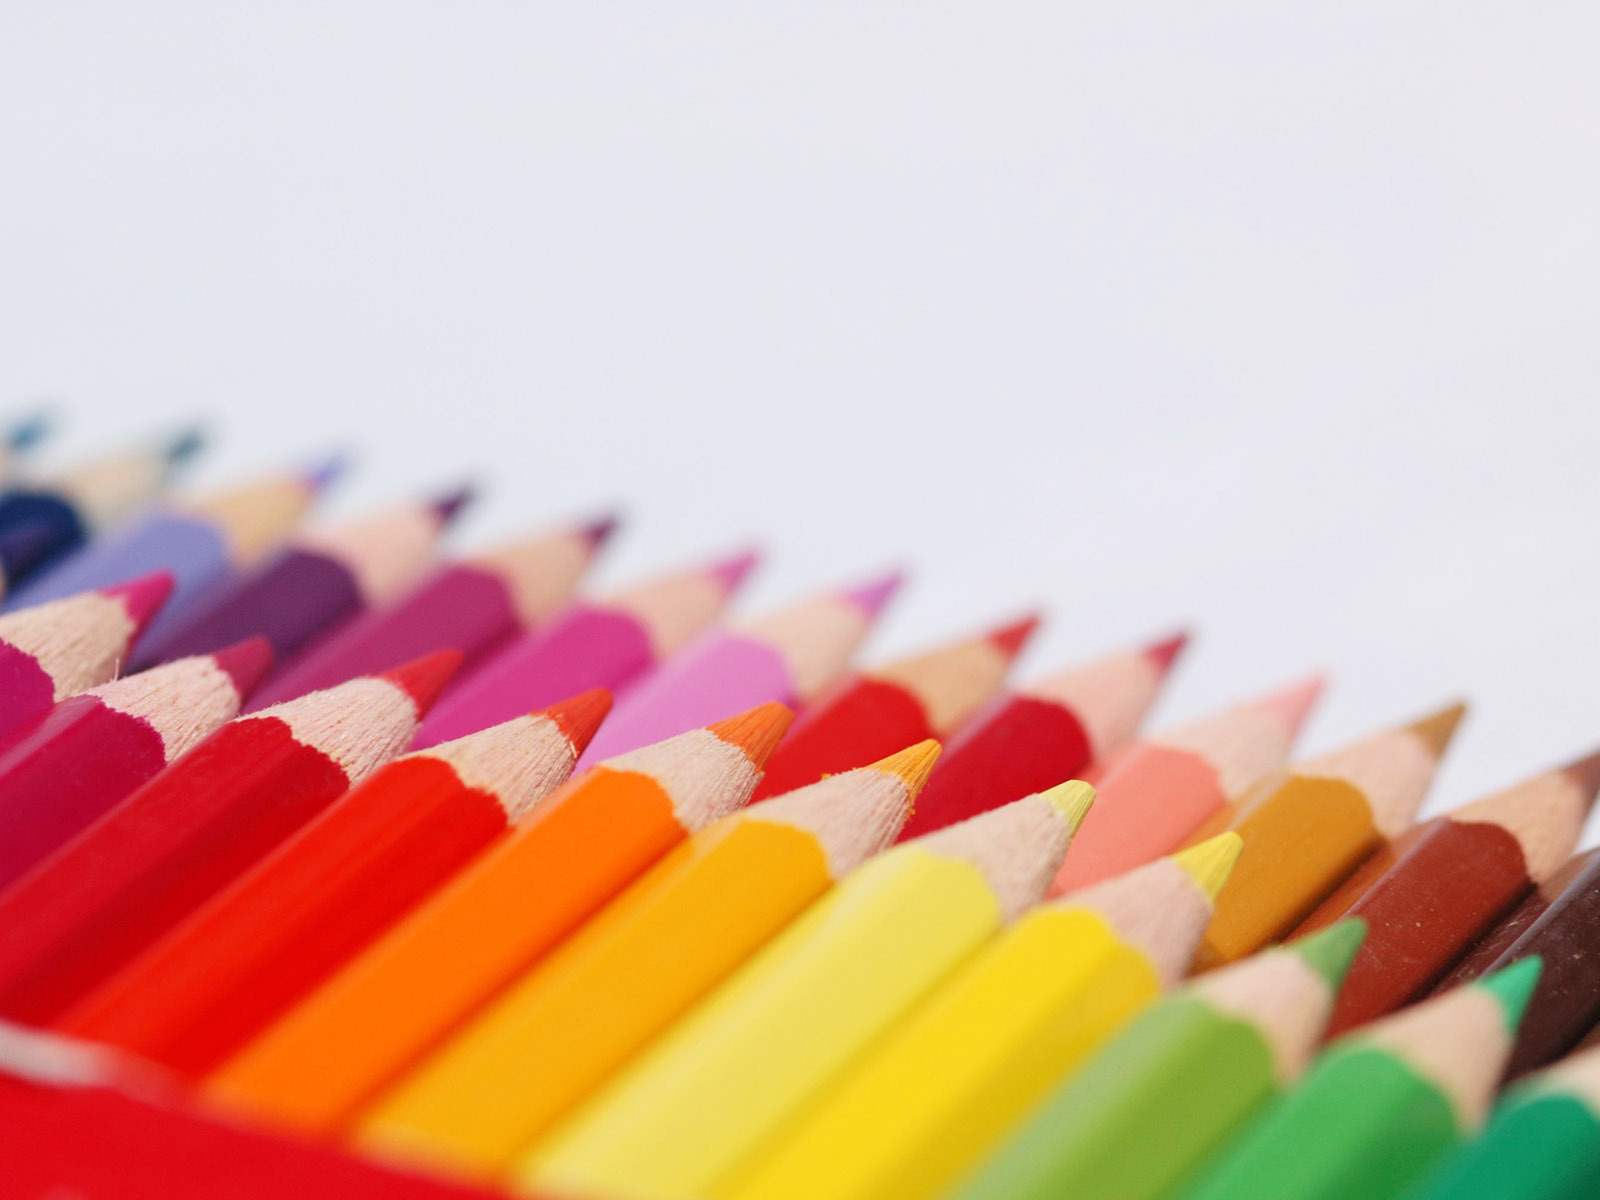 Free Colored Pencils Wallpaper